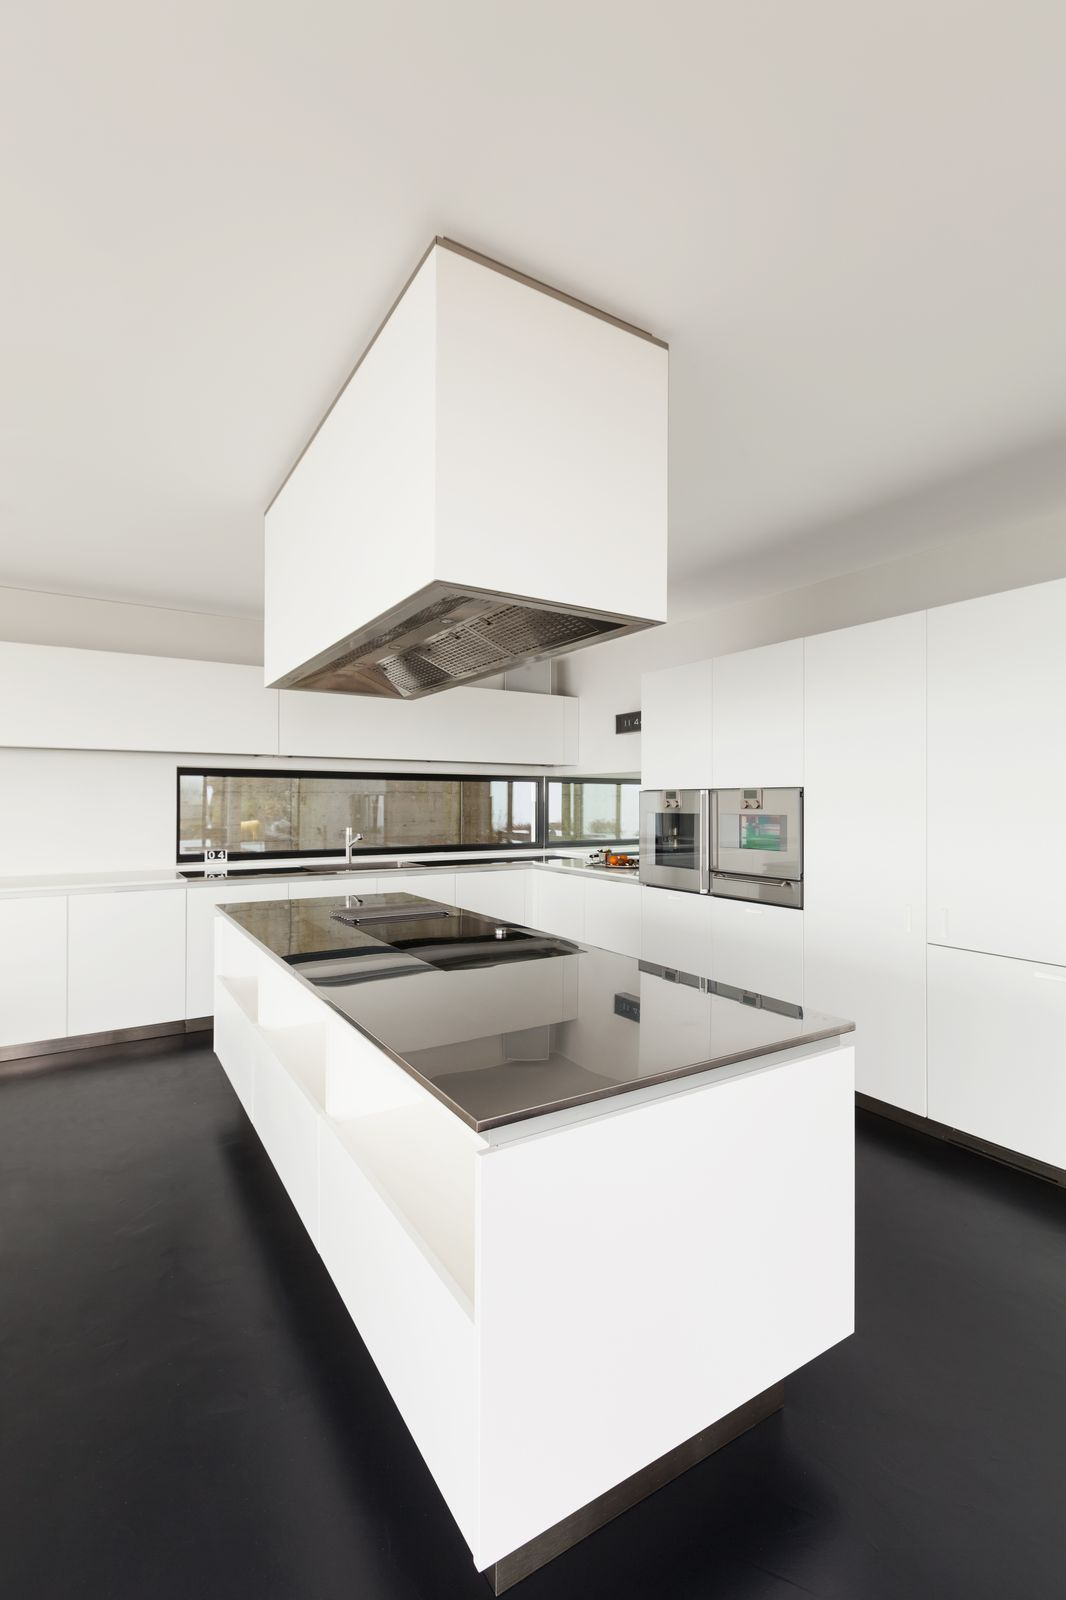 Sleek White New Kitchen Counter Island Fitted with Modern Oven Appliances